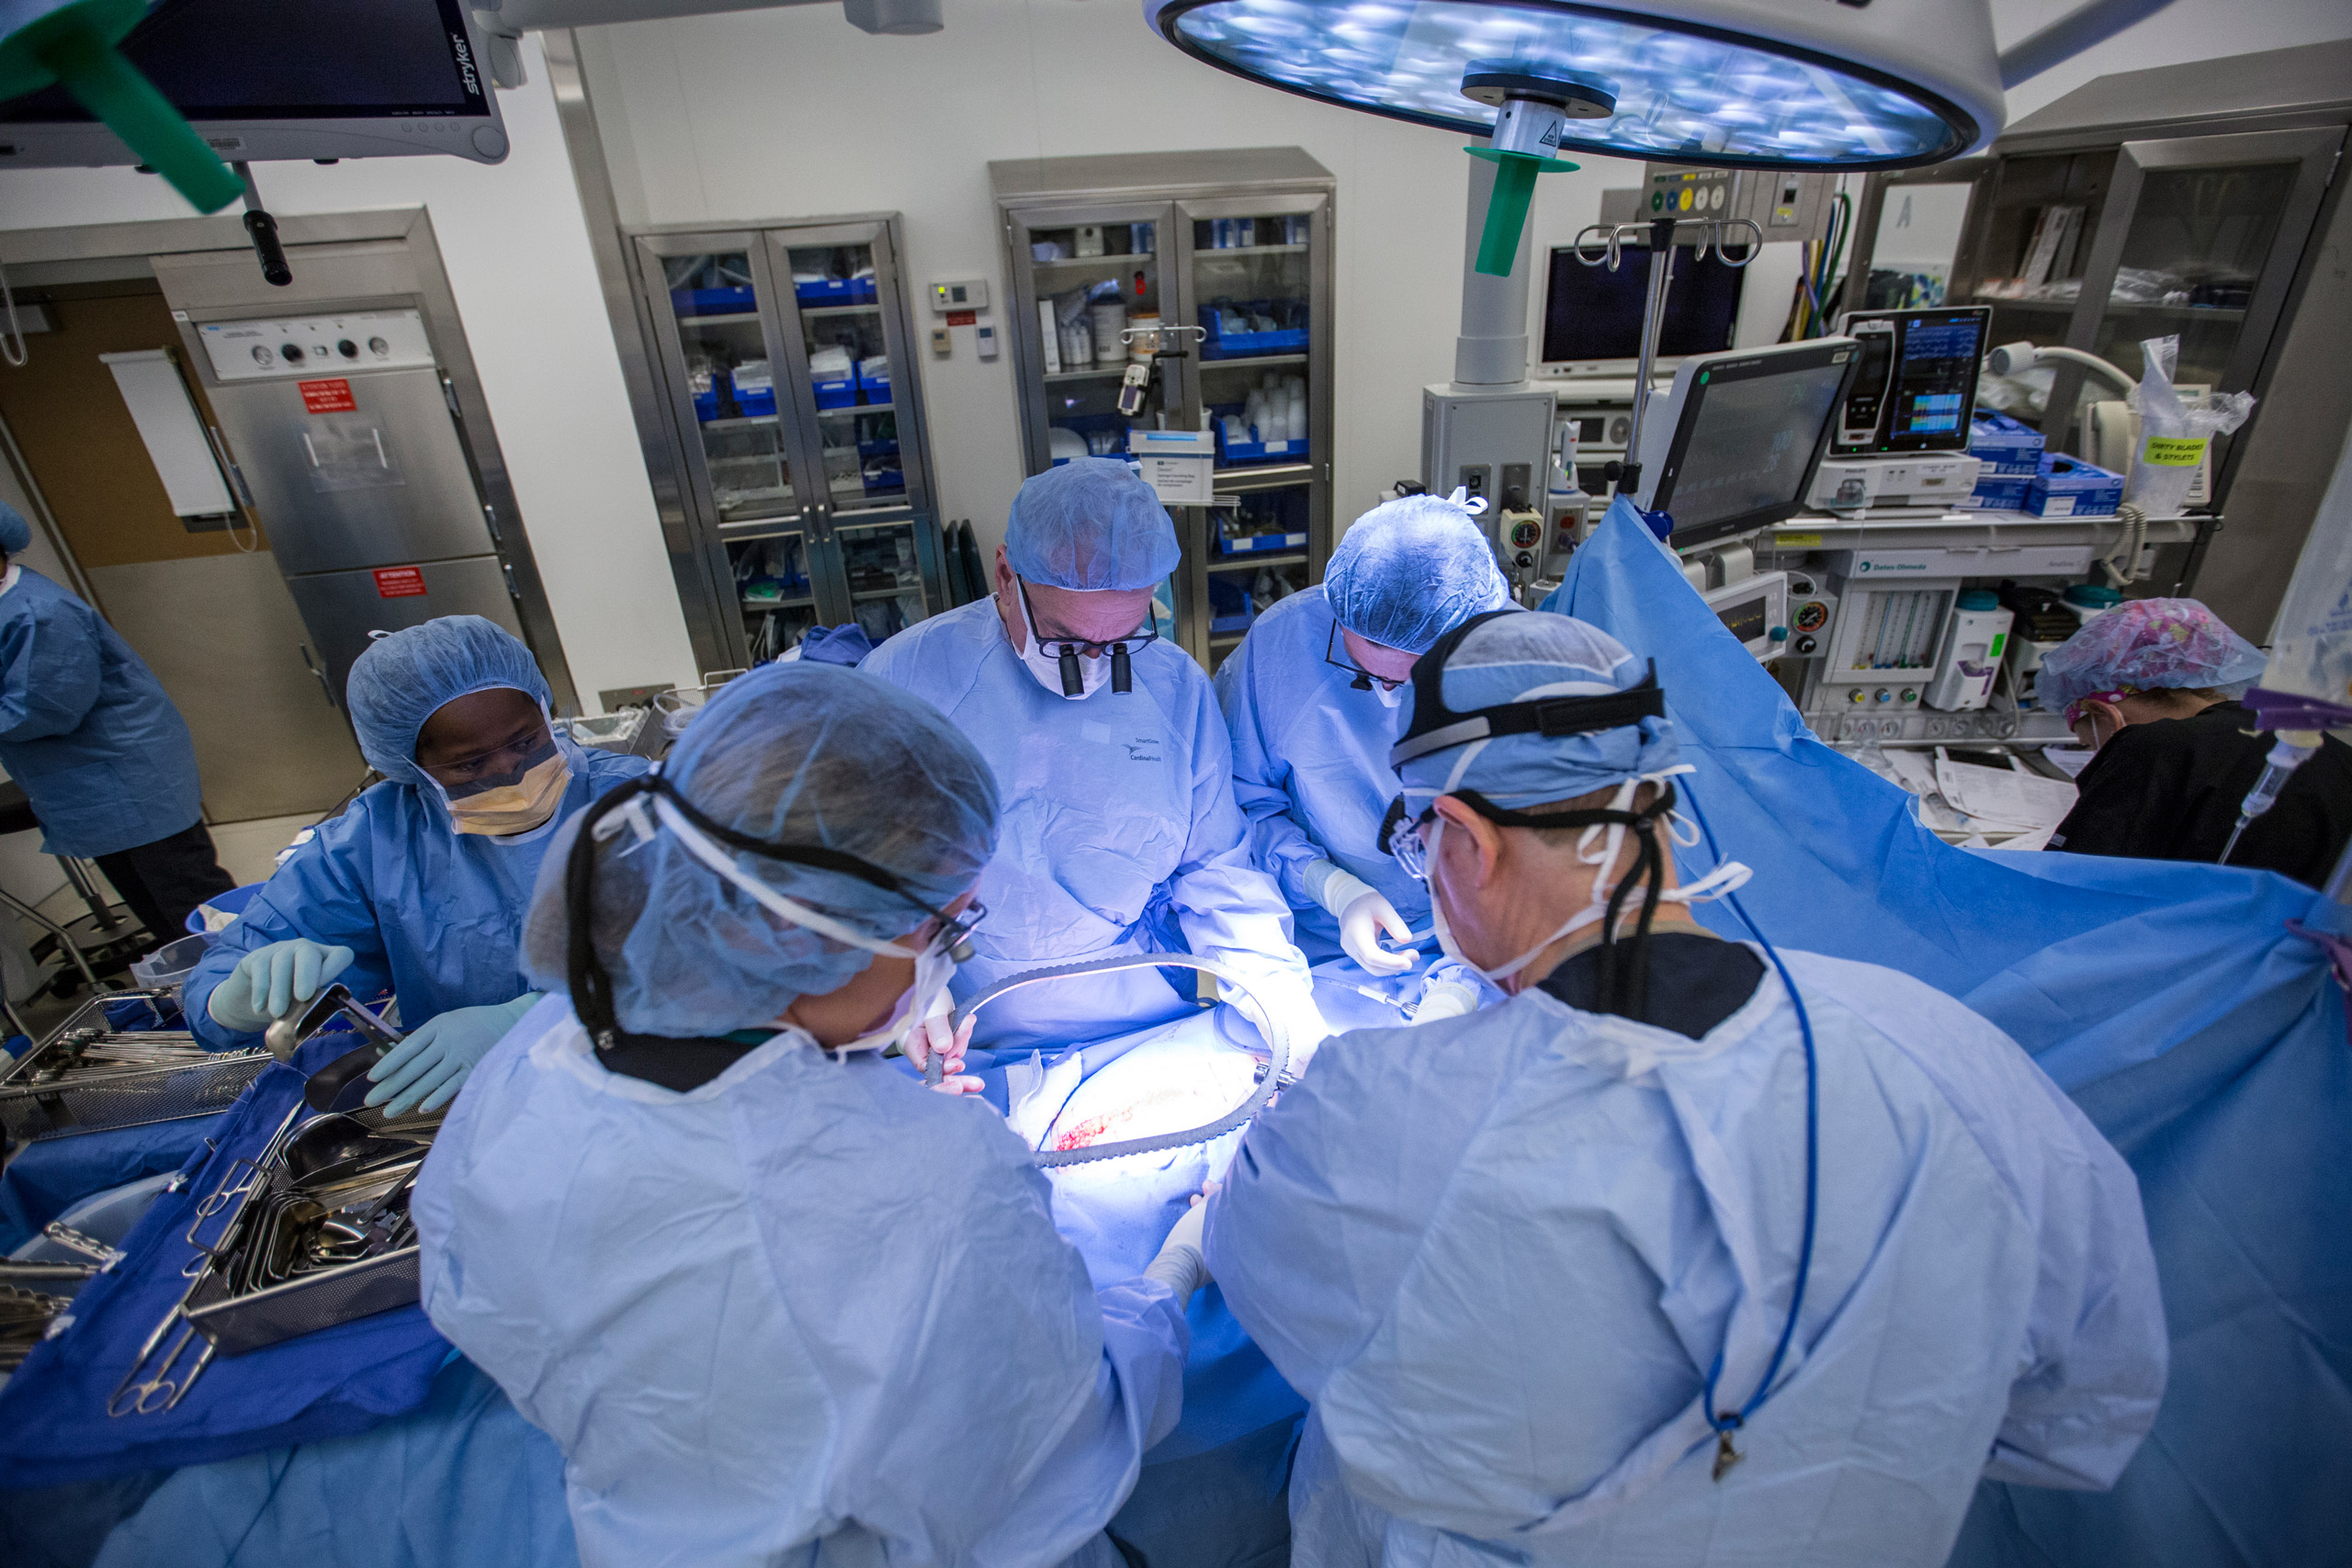 From left to right: Dr. Greg McKenna, Dr. Giuliano Testa, Dr. E. Colin Koon, and Dr. Liza Johannesson perform a womb transplant surgery at Baylor University Medical Center on Sept. 14, 2016.